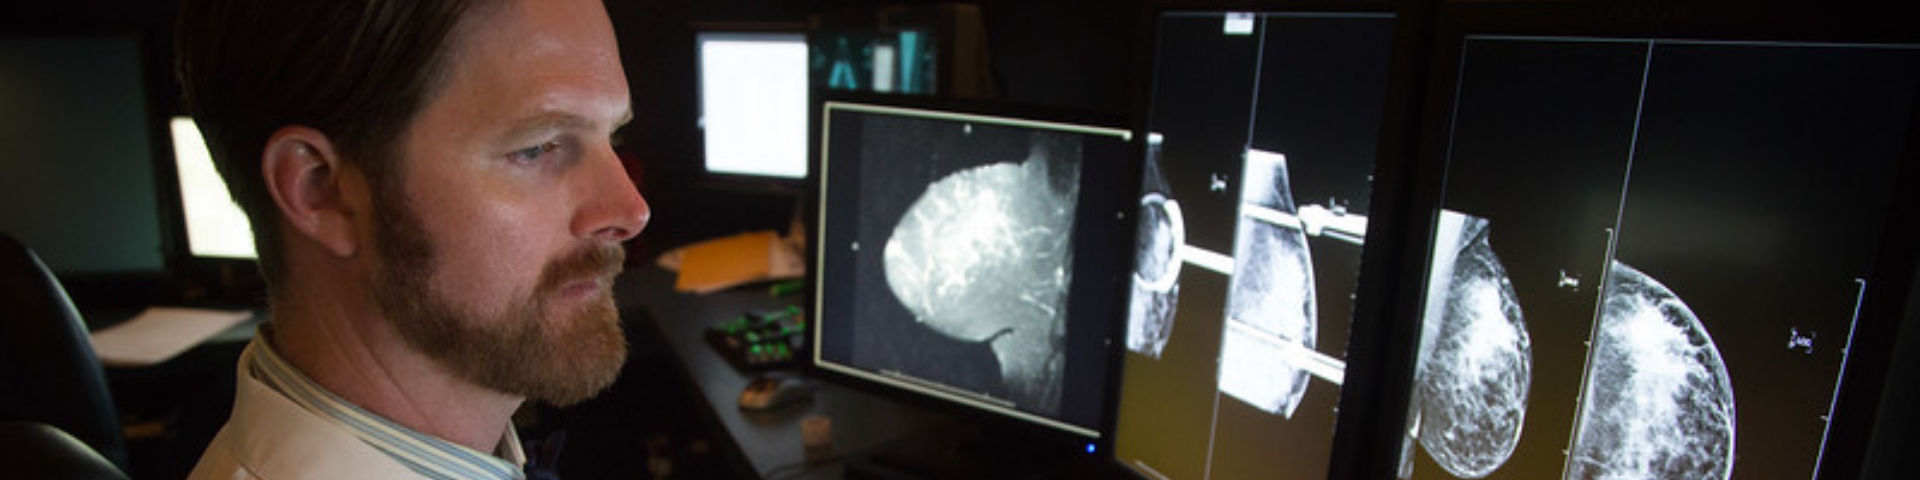 Mammography Header Image